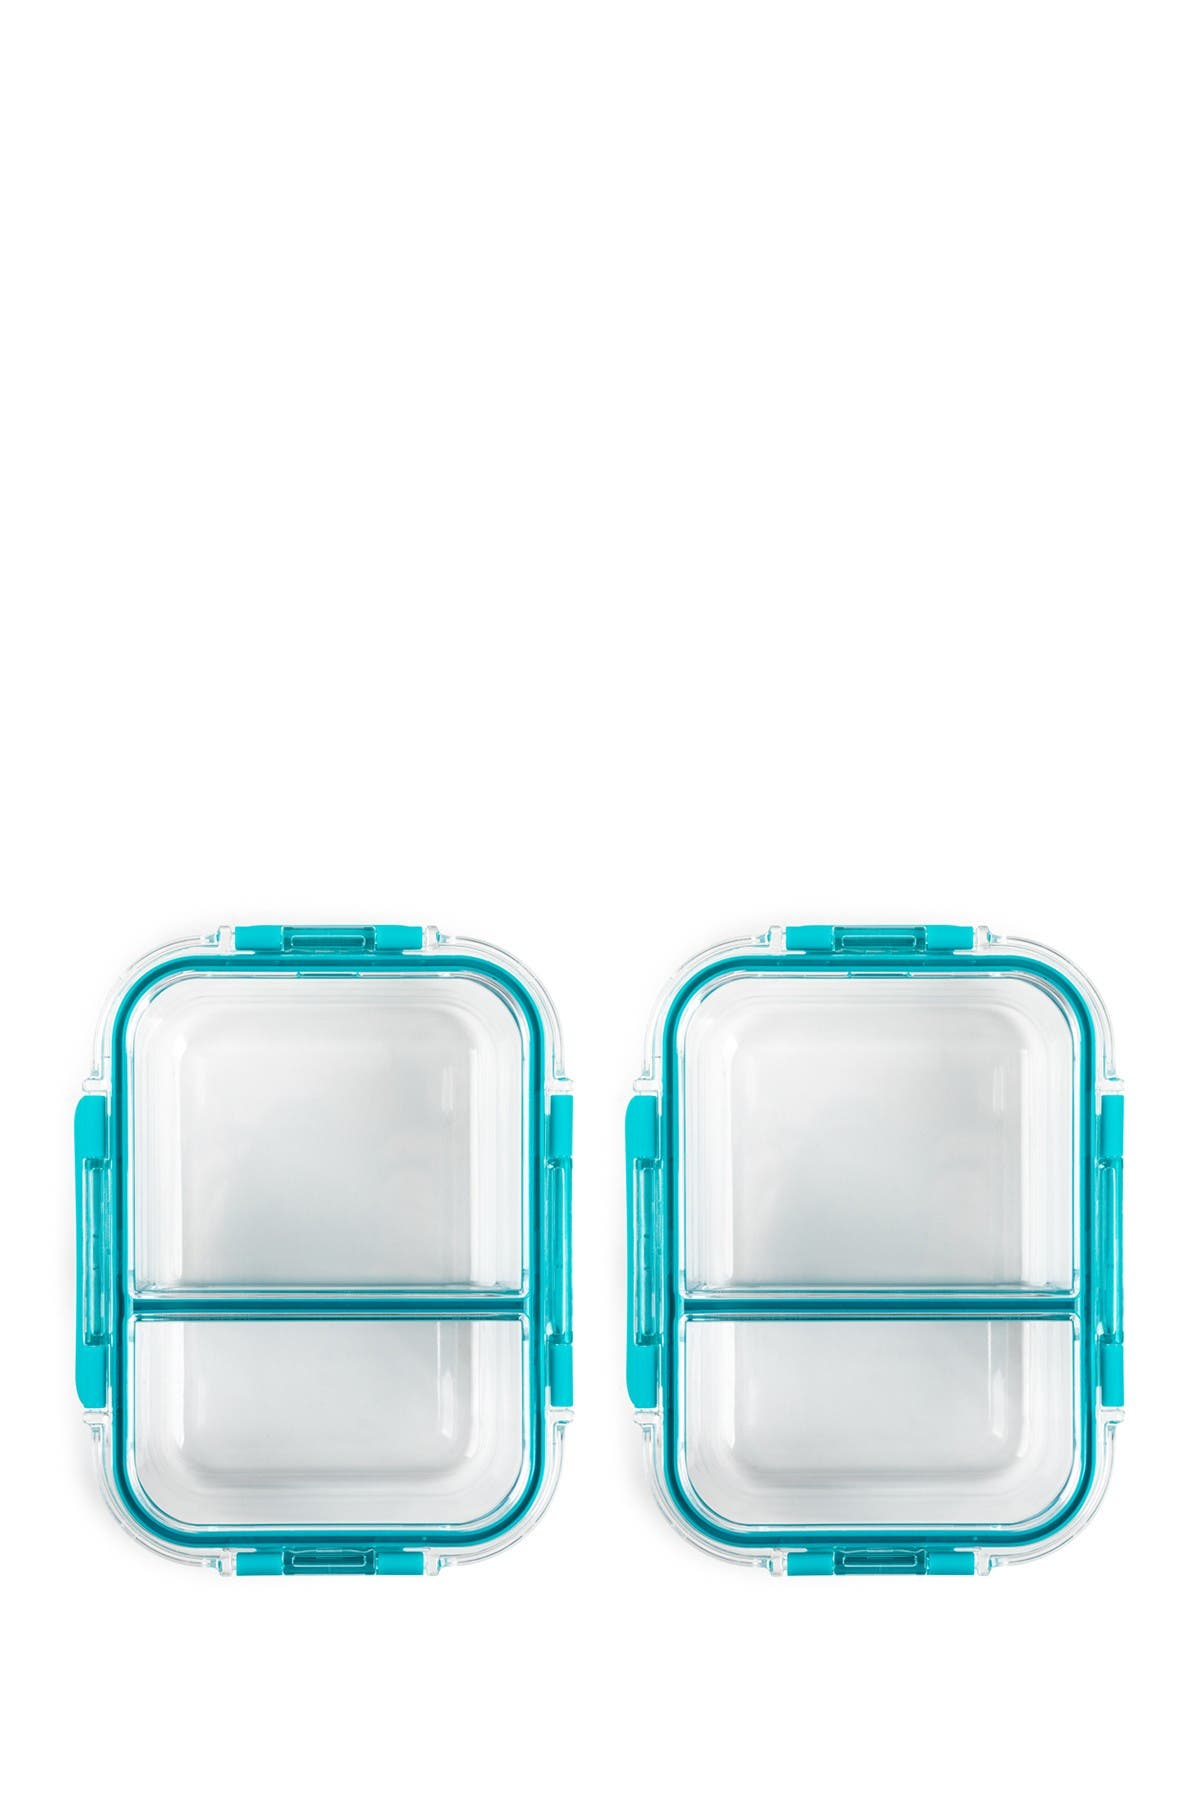 Image of Core Home 32oz TrueDivide Glass Food Storage Container - Teal - Set of 2